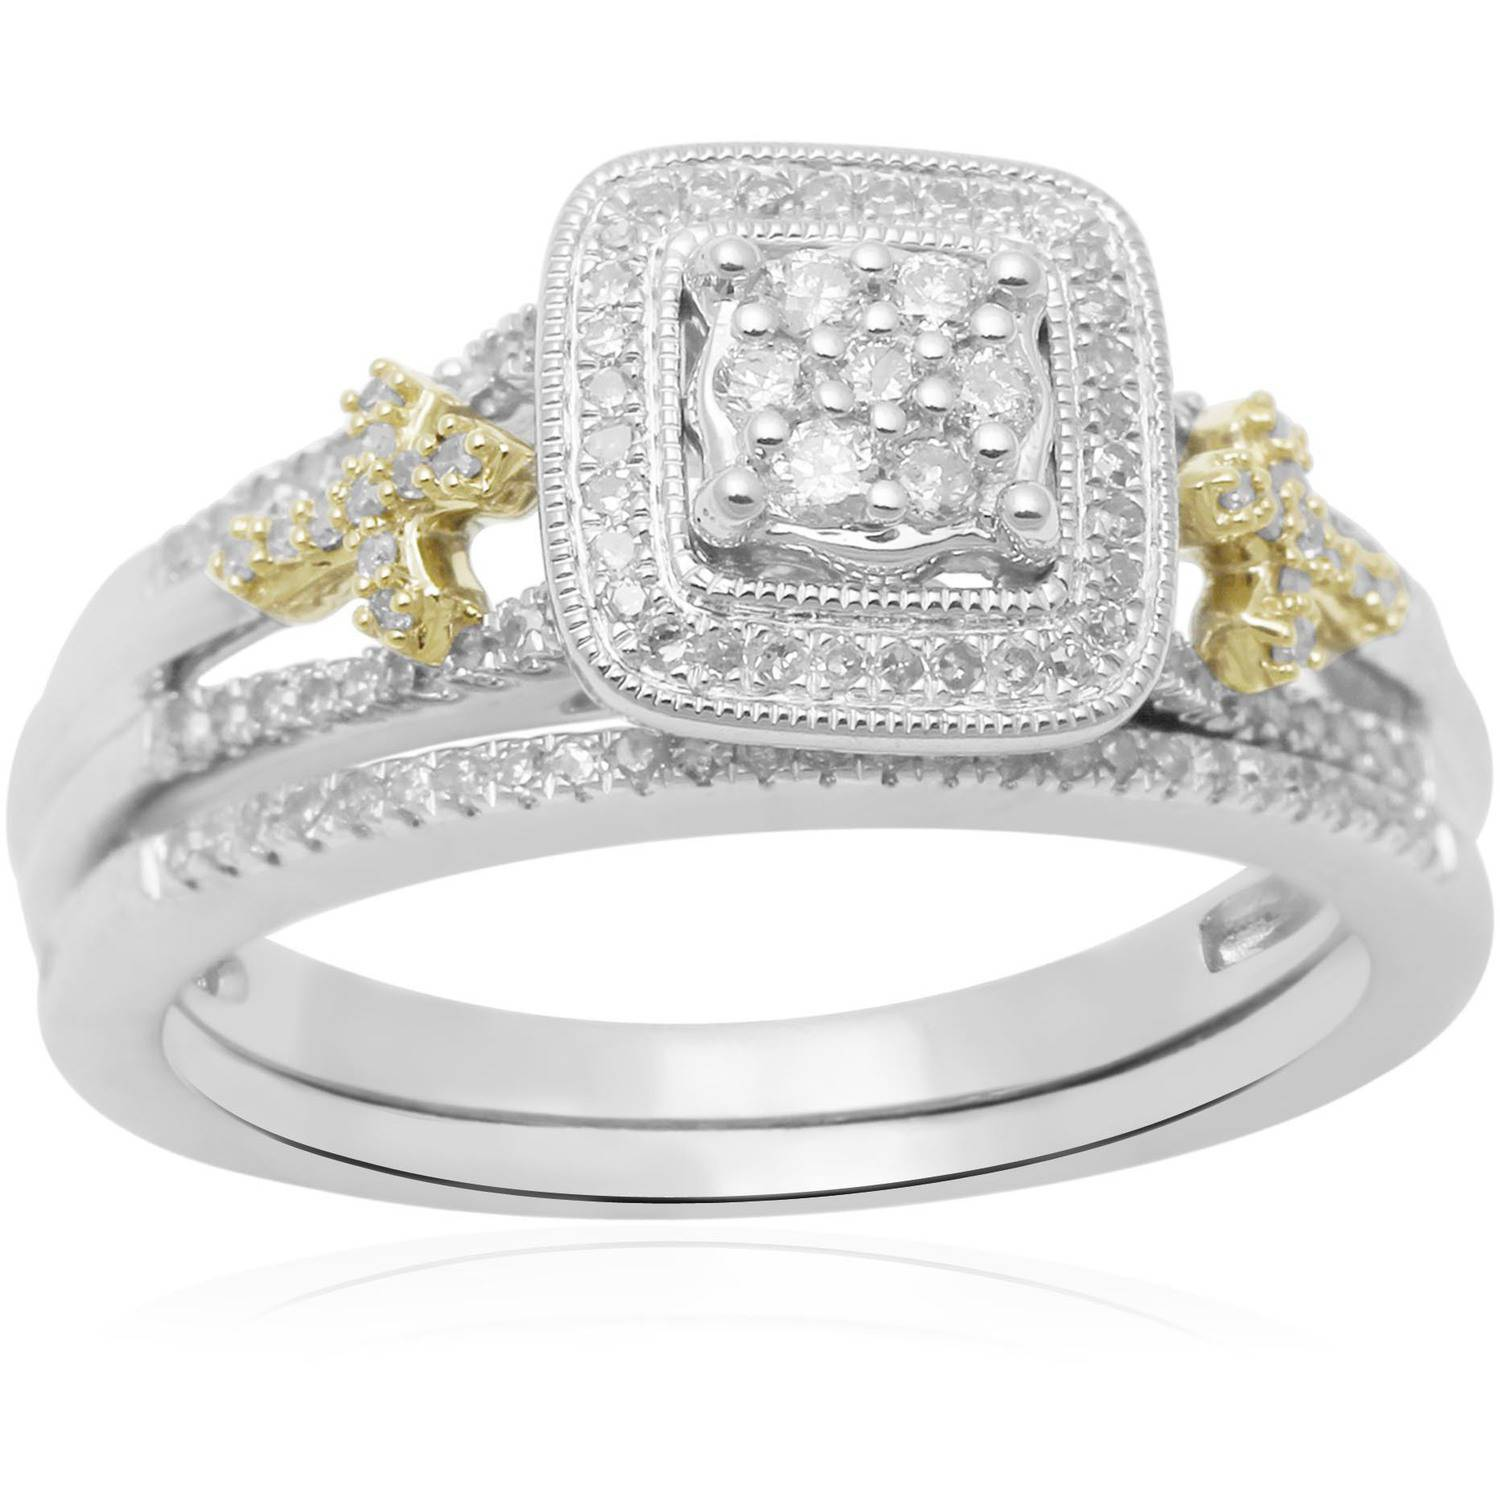 Walmart Wedding Rings Sets For Him And Her synrgyus